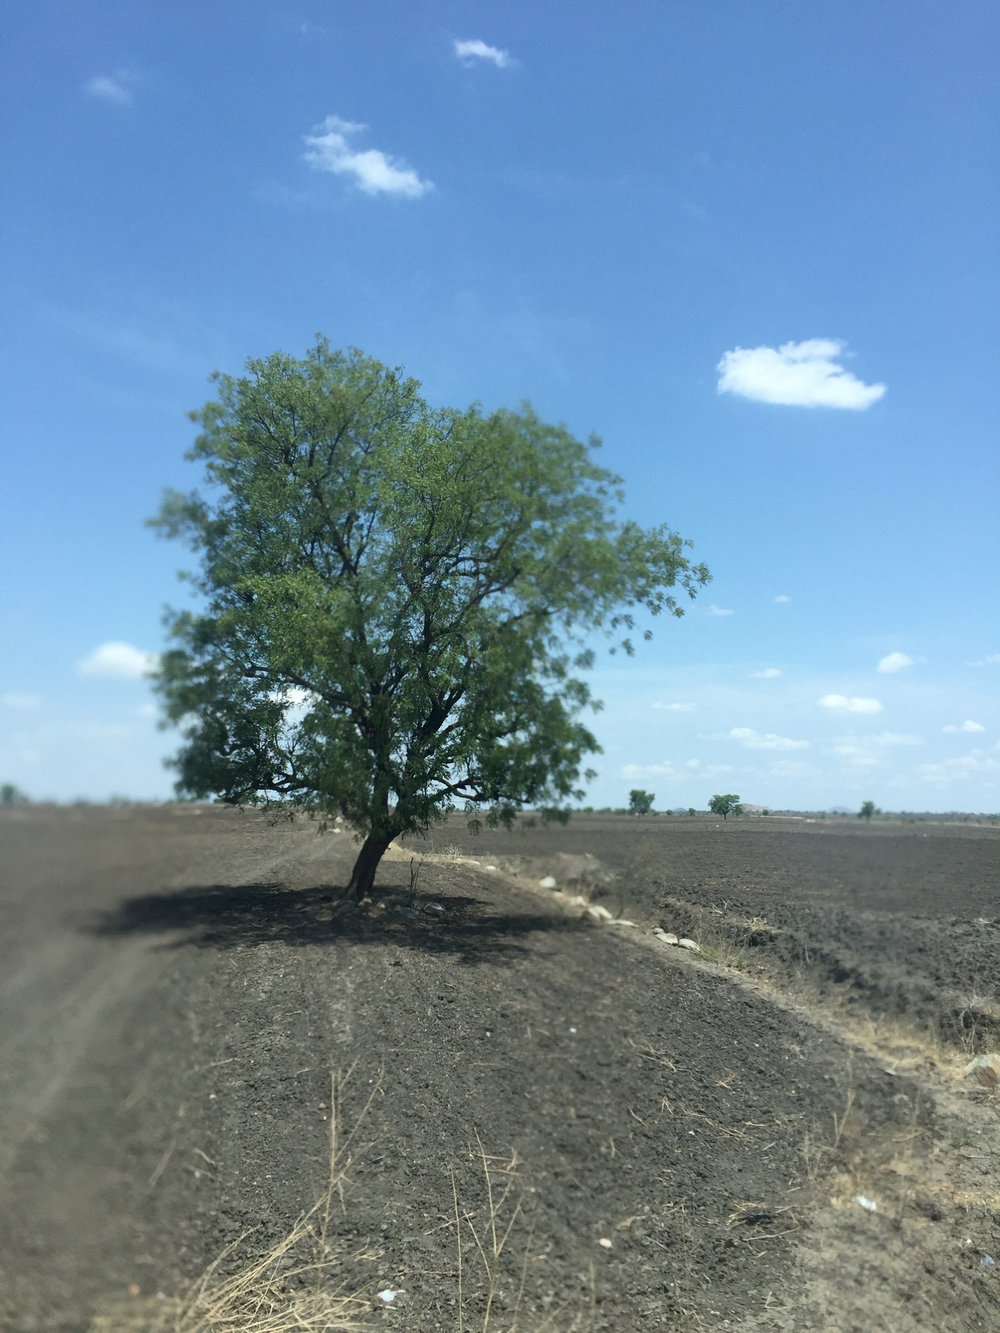 We passed miles of fields like this one on the way to Loyola Xavier, evidence of the three-year drought.